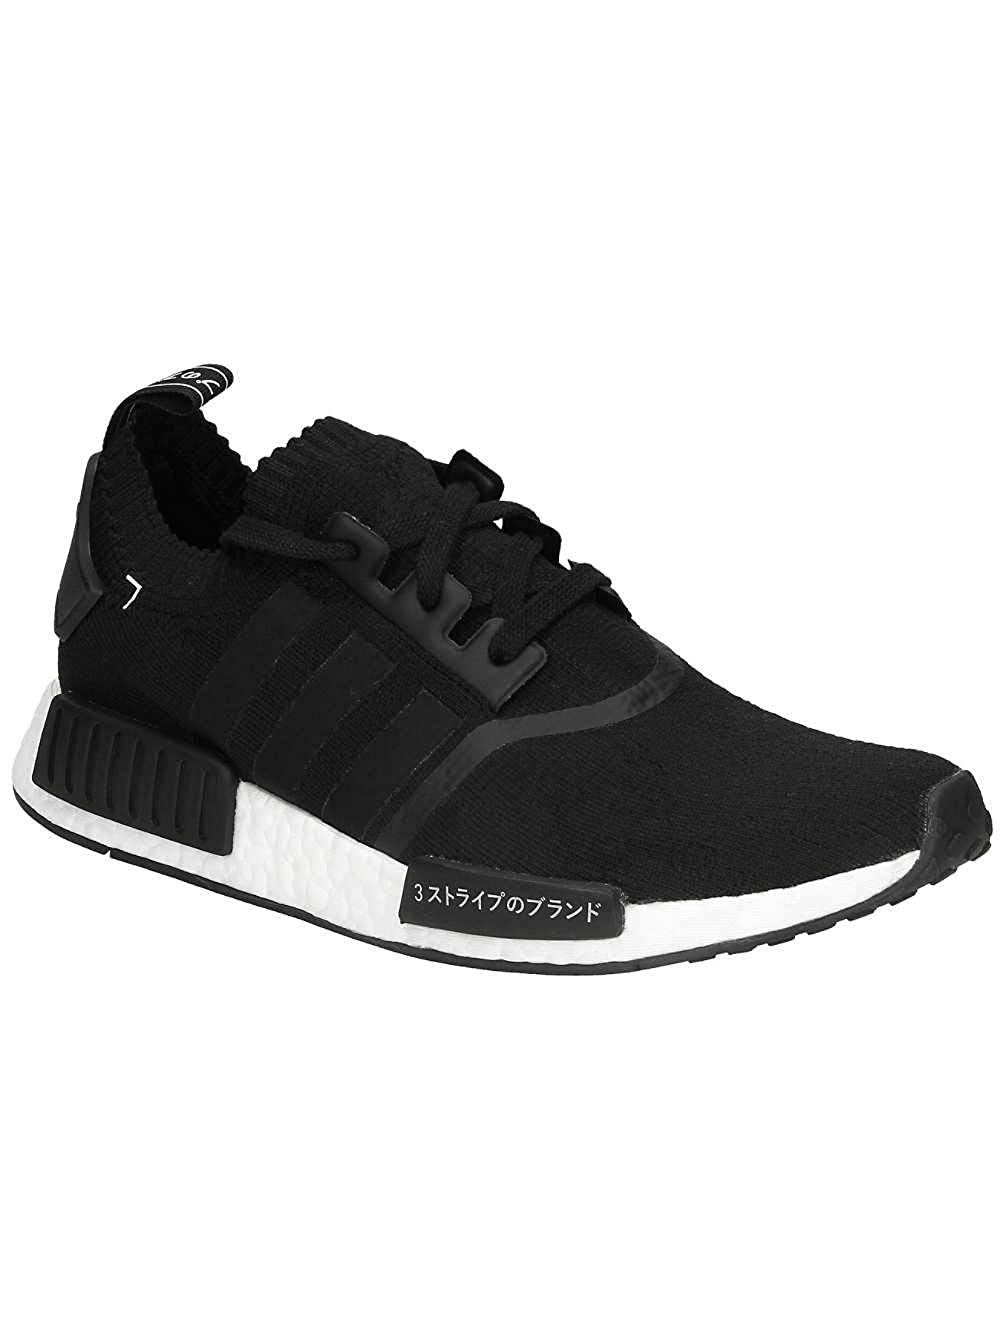 low priced ae006 0ee72 adidas NMD R1 Pk 'Japan Boost' - S81847 - Size 11 Black, White